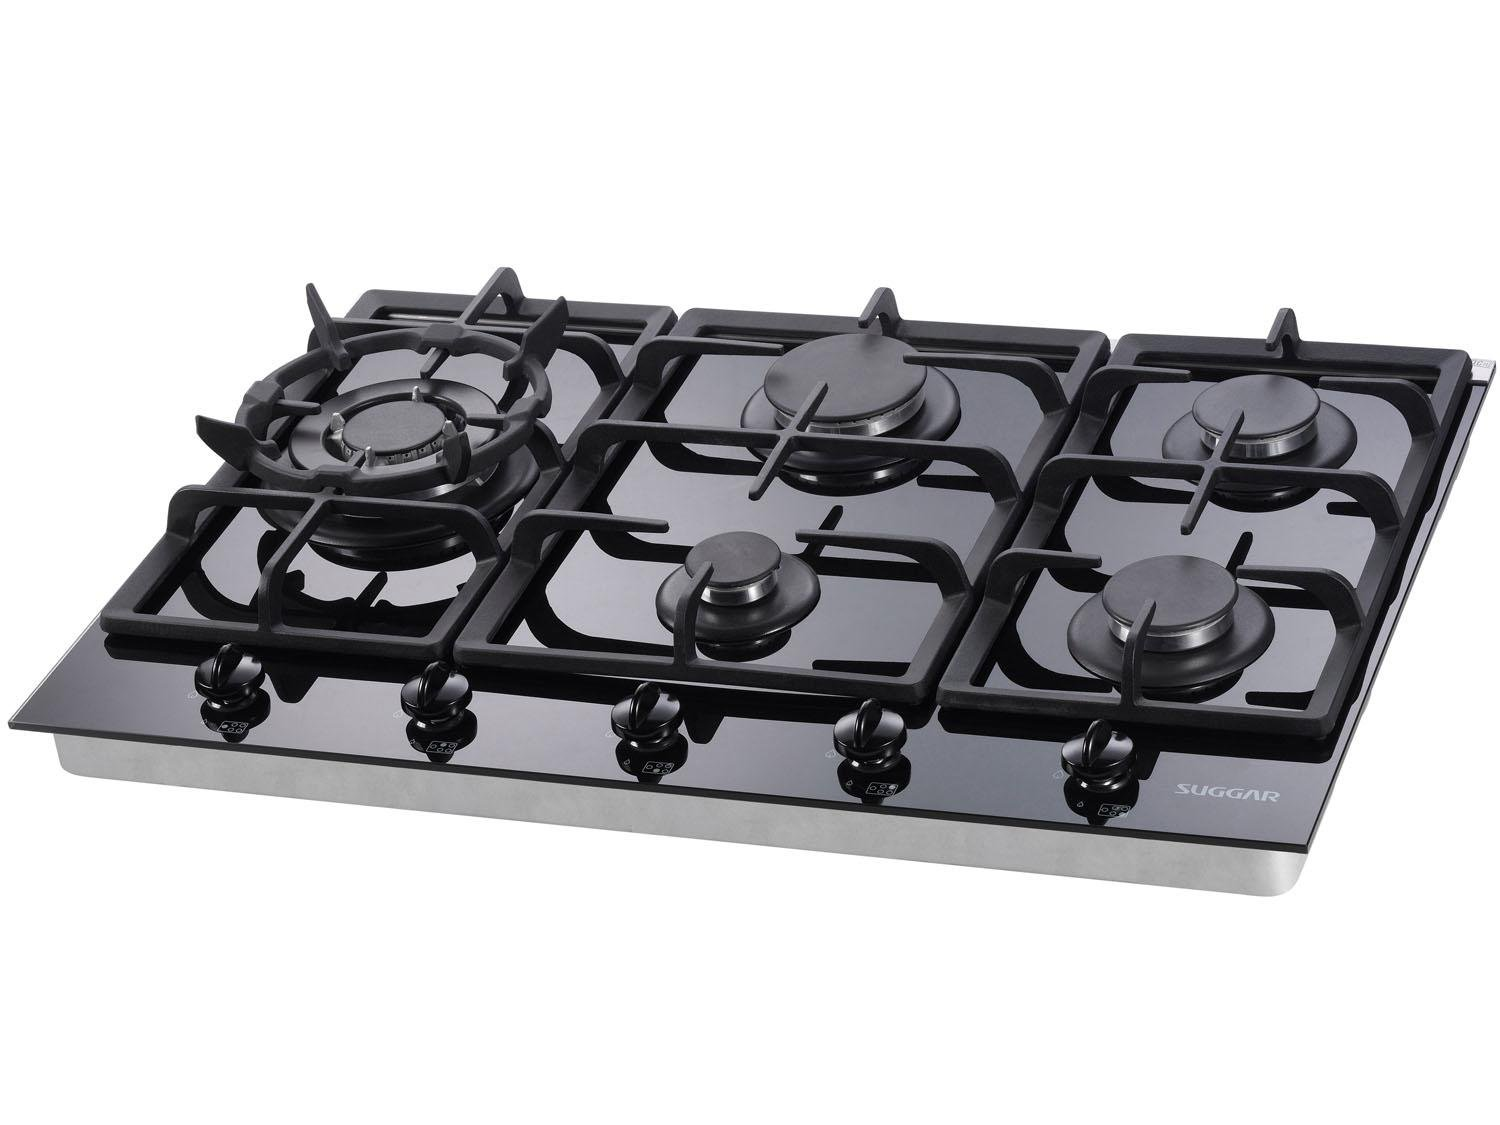 Bancada Para Cooktop 1 Pictures to pin on Pinterest #5C626F 1500x1125